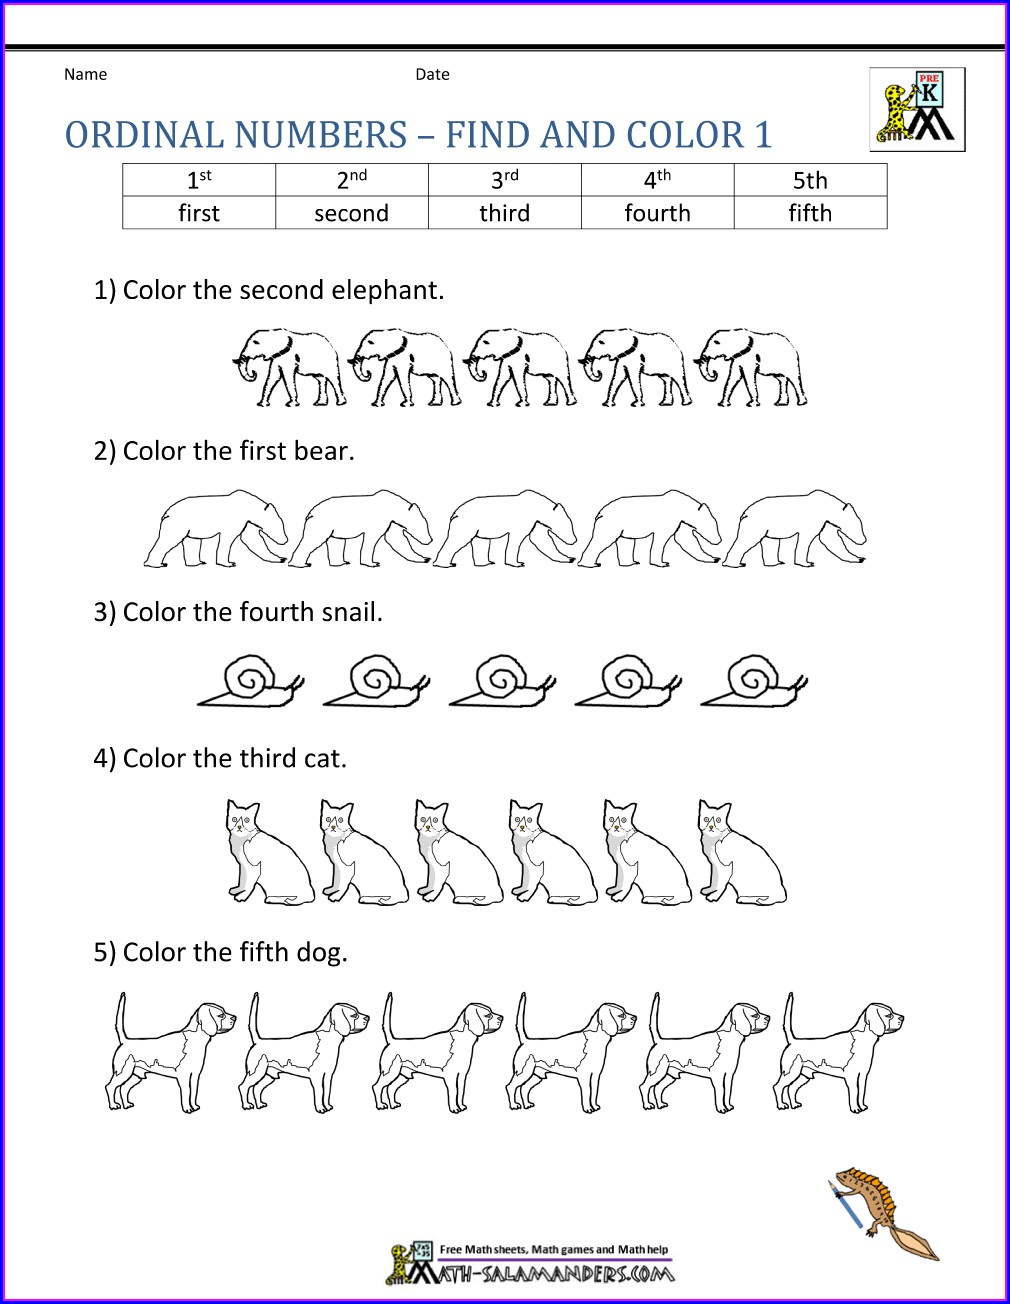 Worksheet On Ordinal Numbers For Class 1